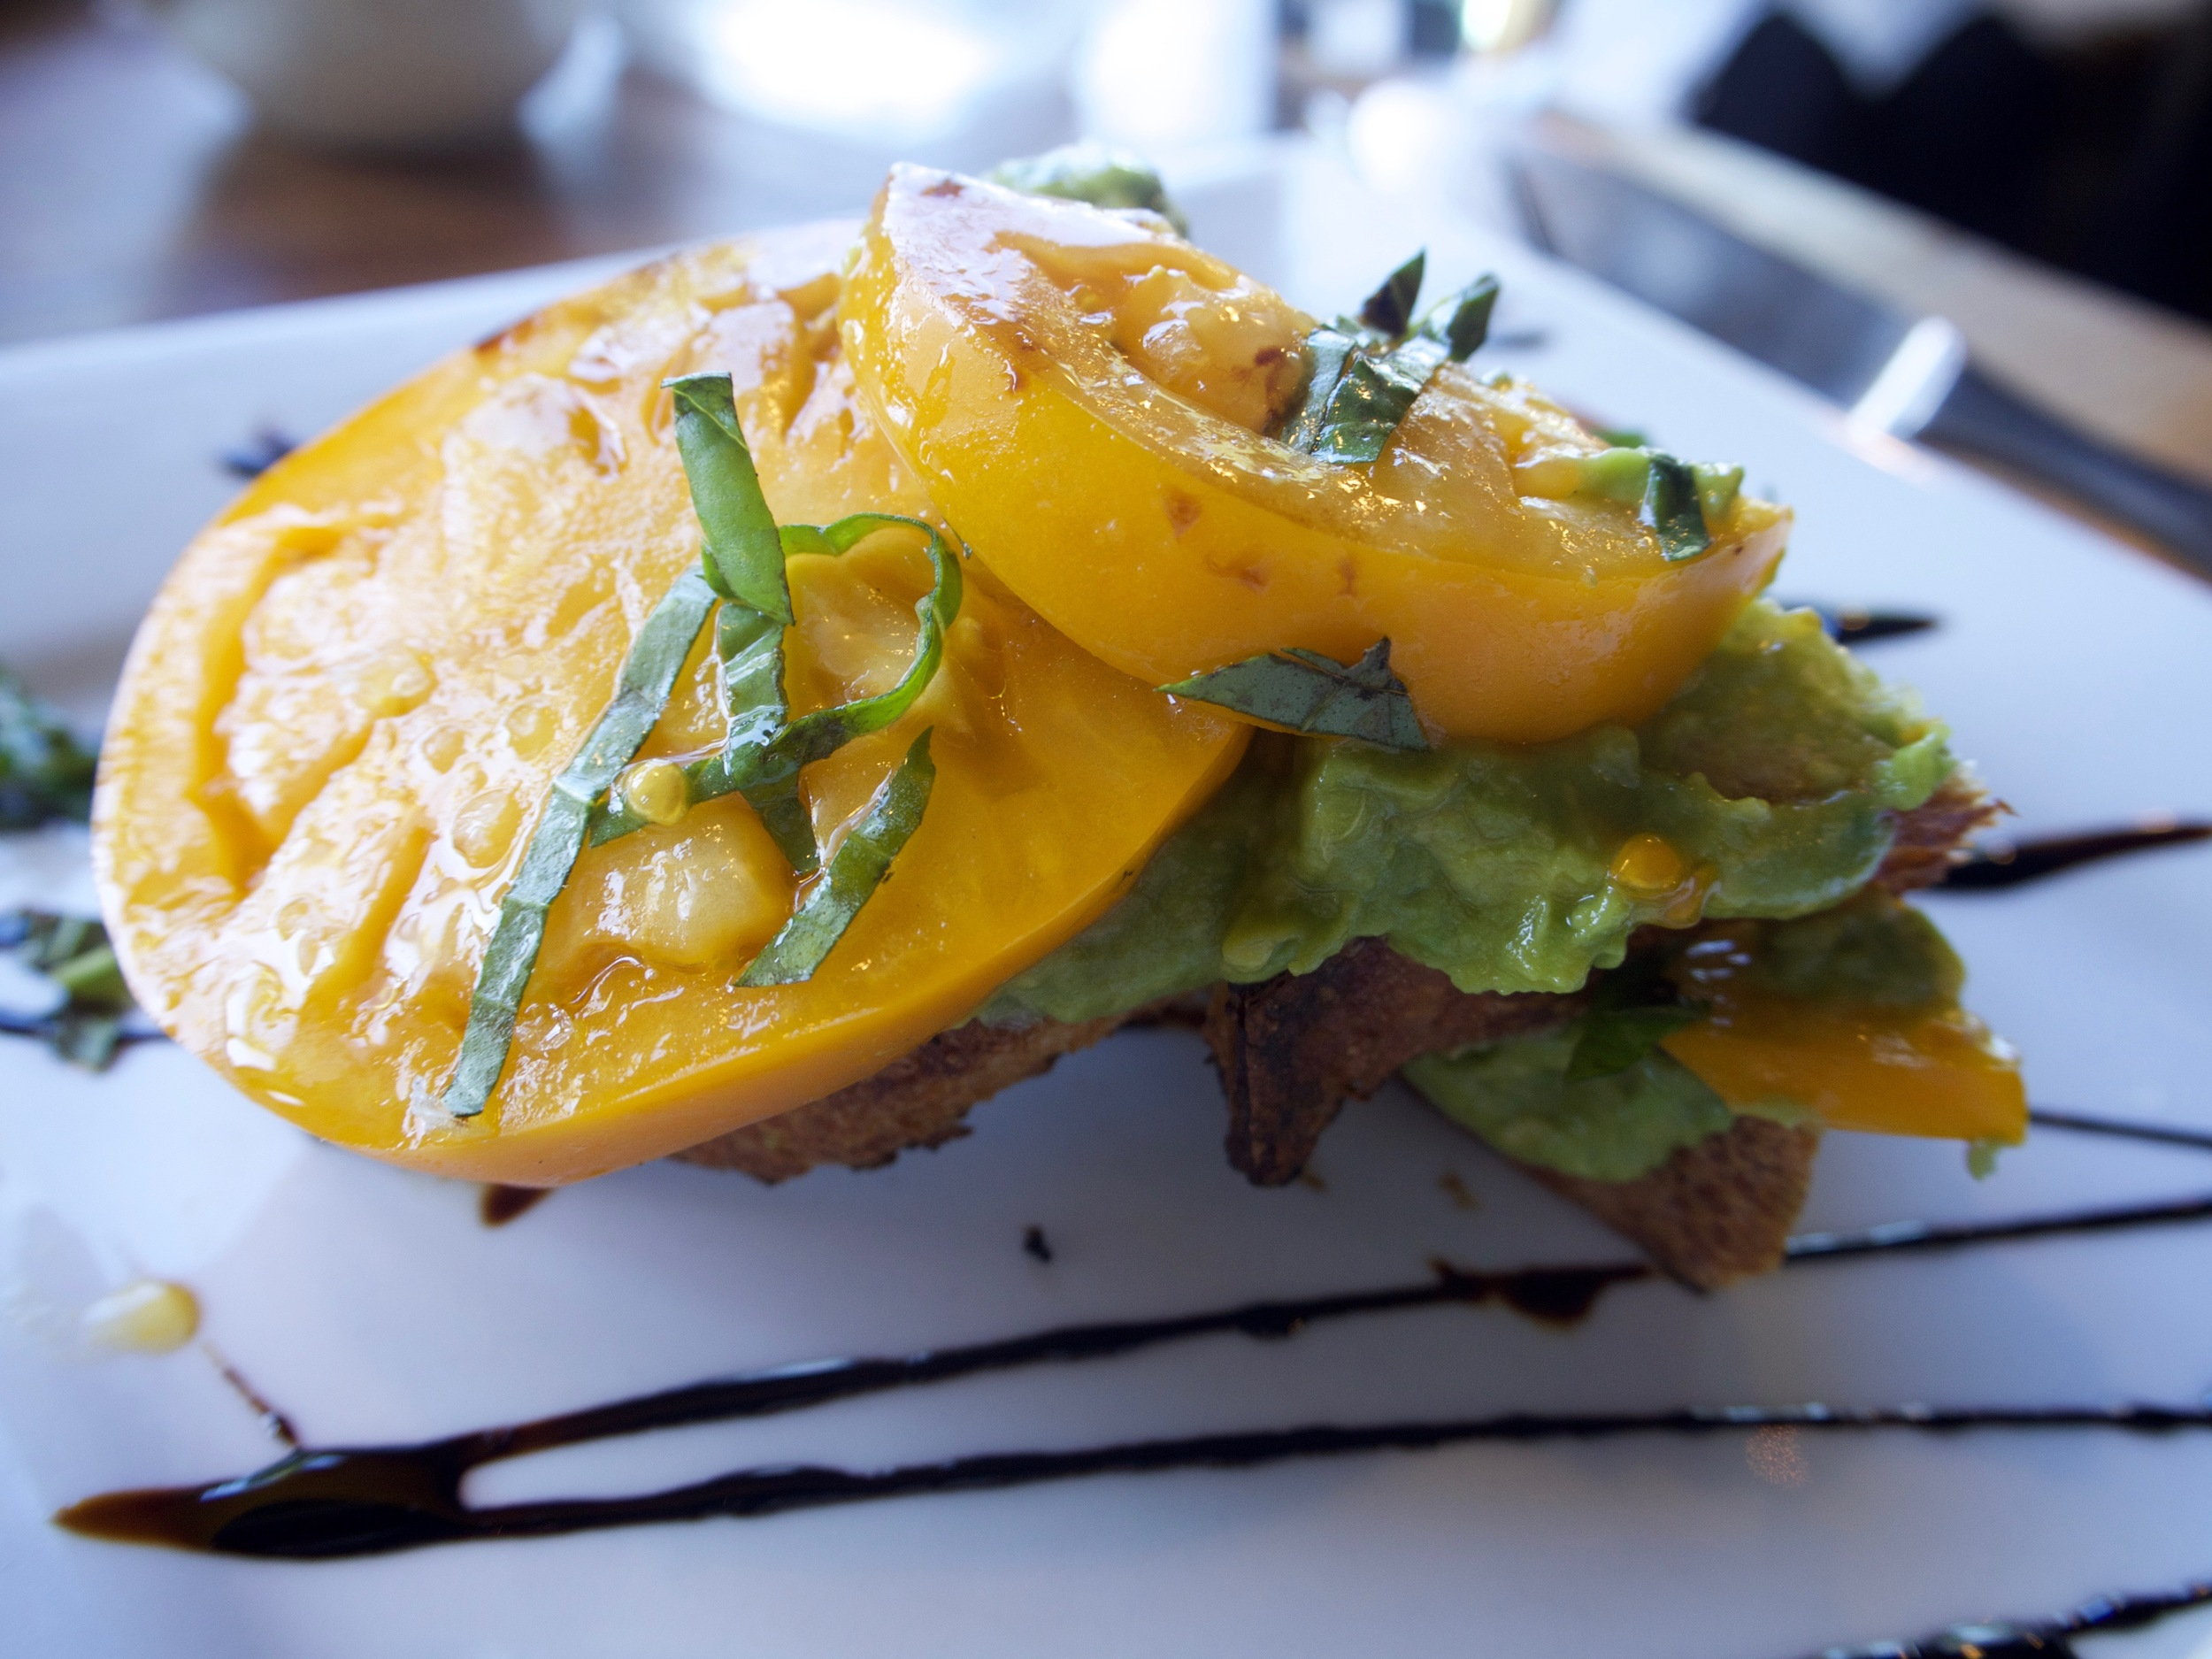 Neighborhood spot in Berkeley with a gorgeous avocado toast, heirloom tomatoes, basil and balsamic reduction